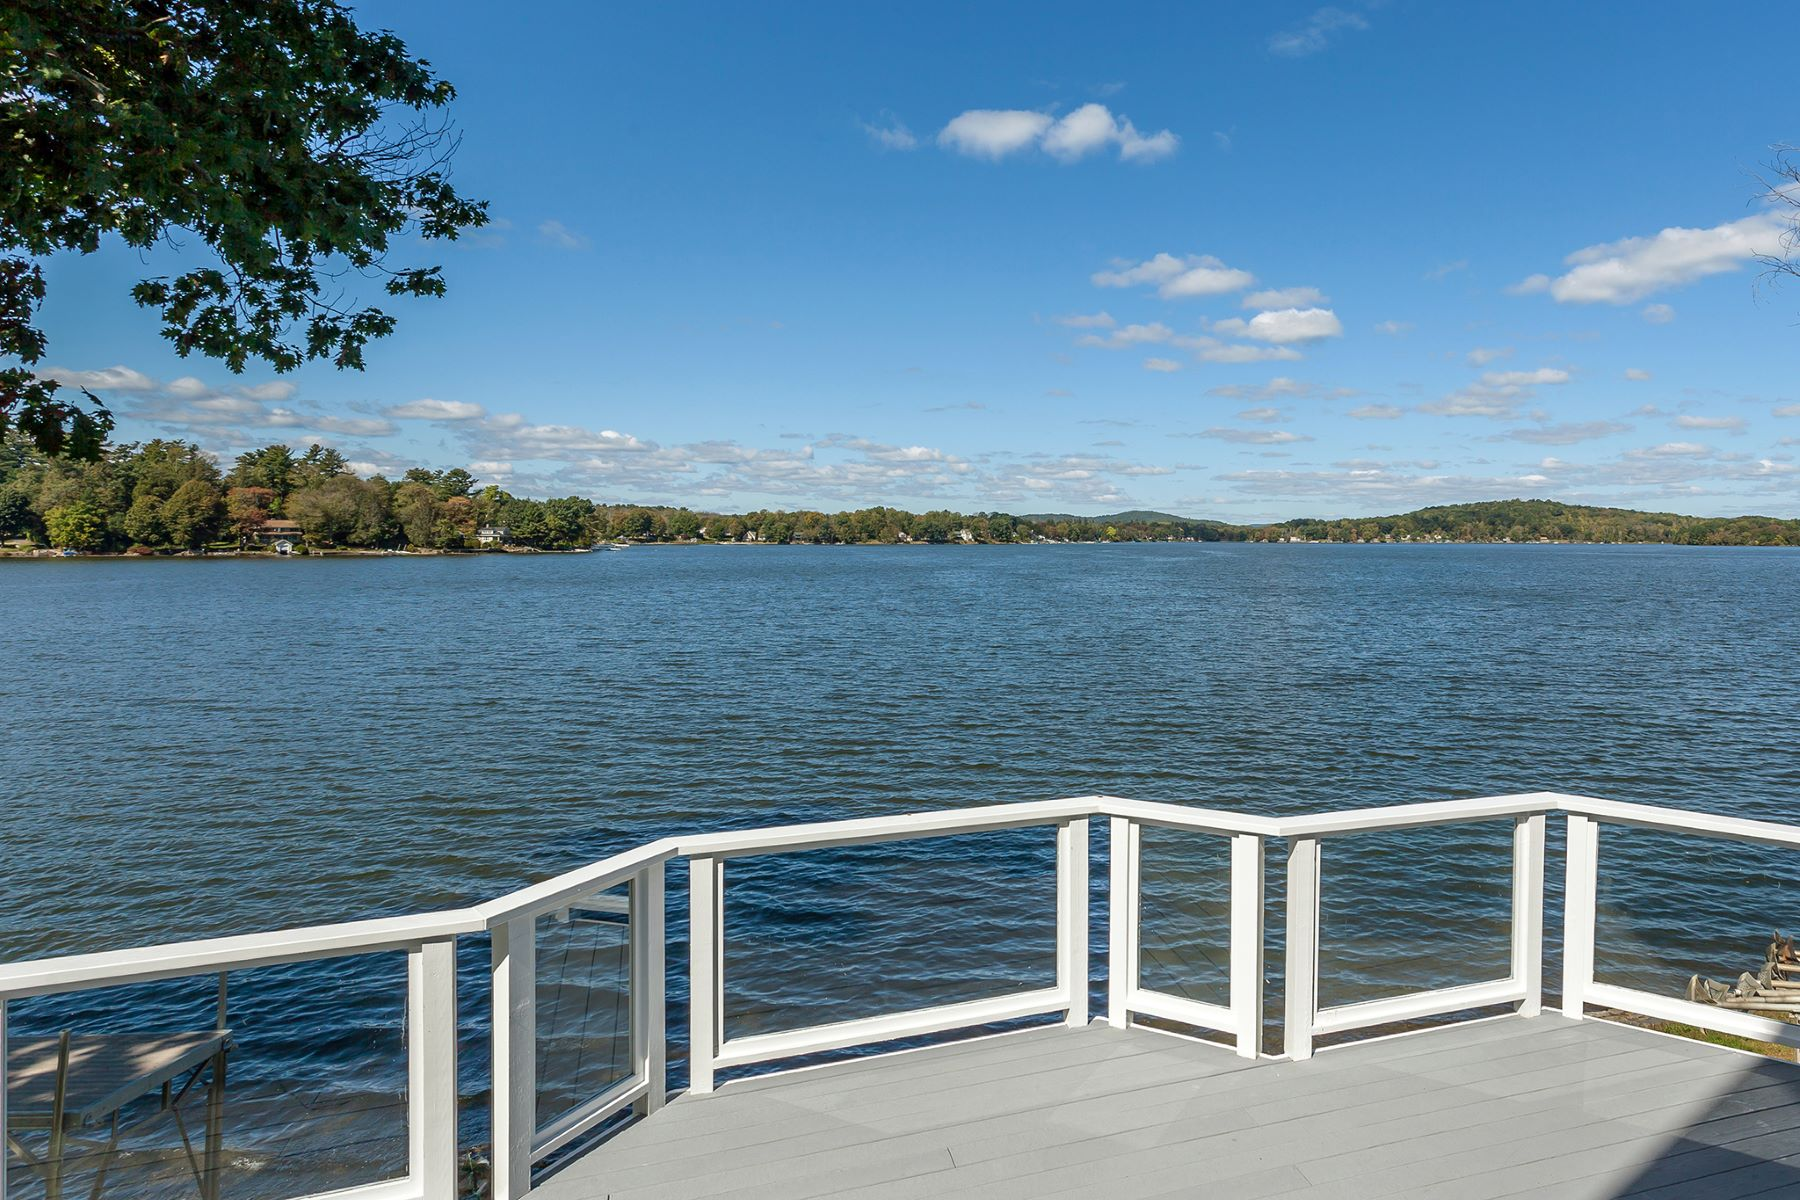 Single Family Home for Sale at Fabulous Bantam Lake Waterfront Home 219 East Shore Rd Morris, Connecticut 06763 United States